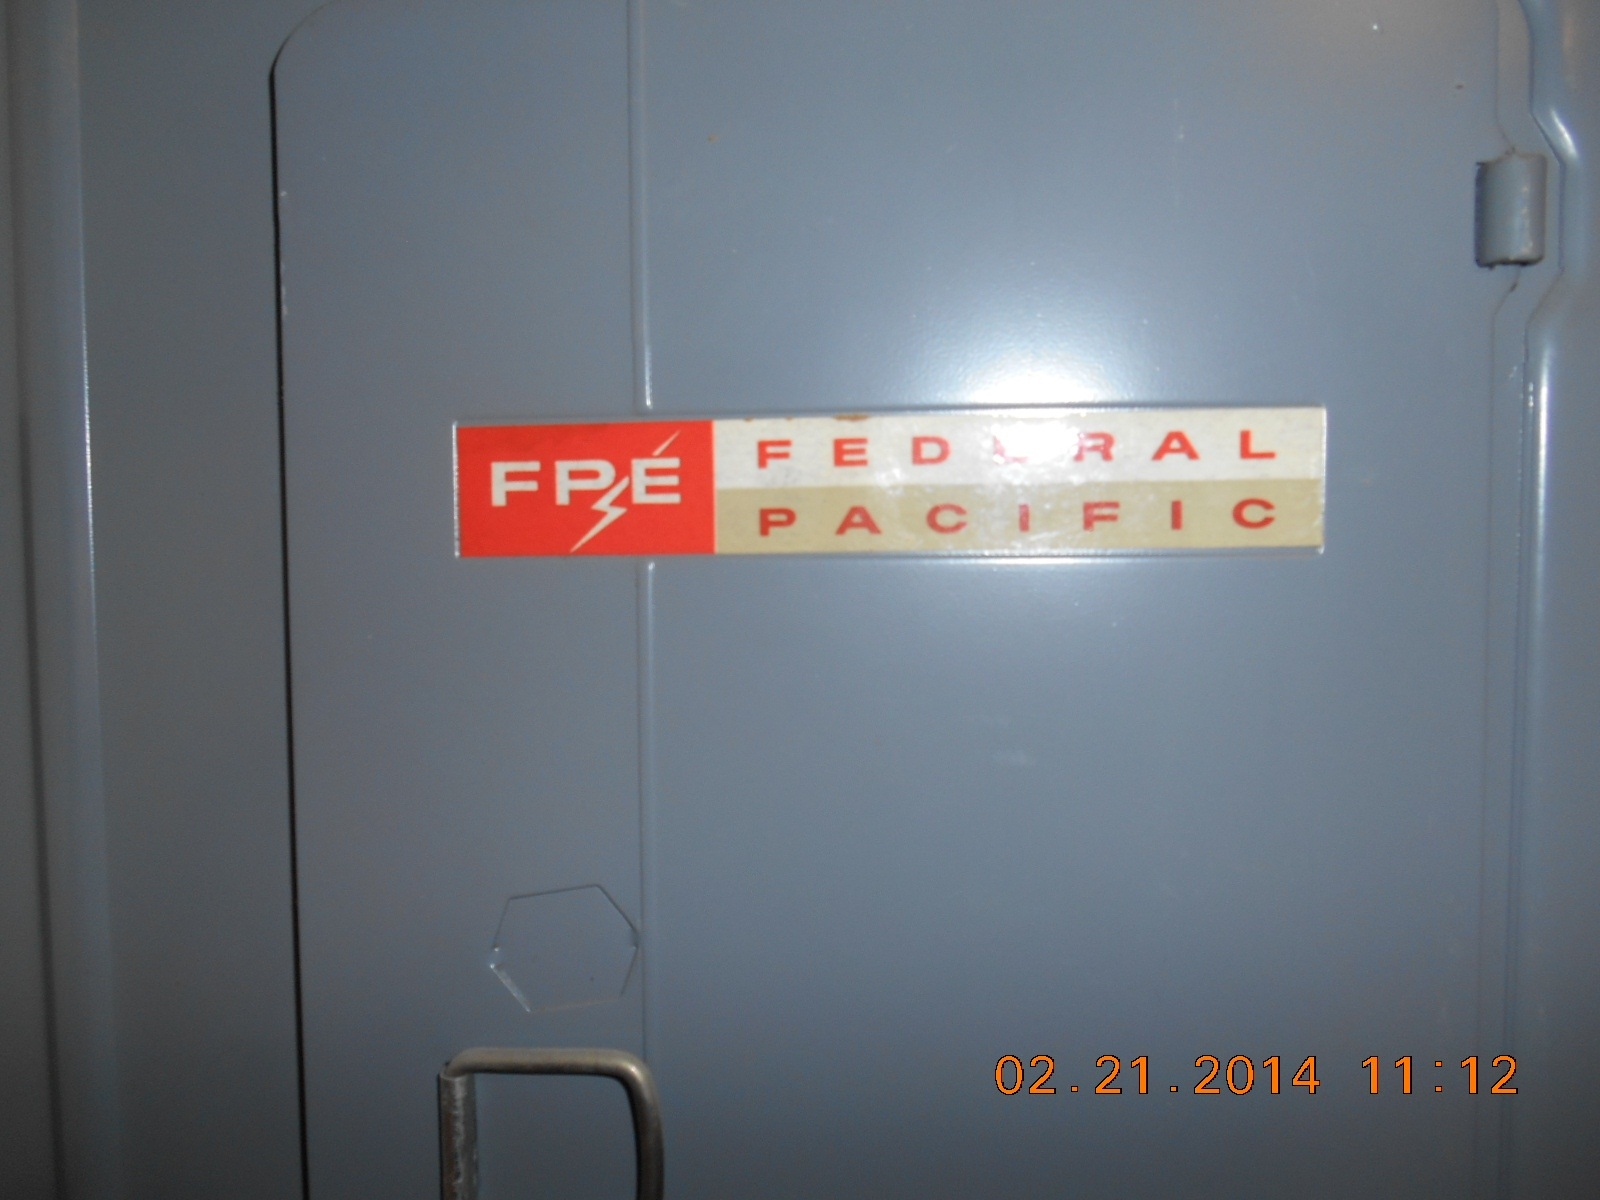 FPE Electrical Panel